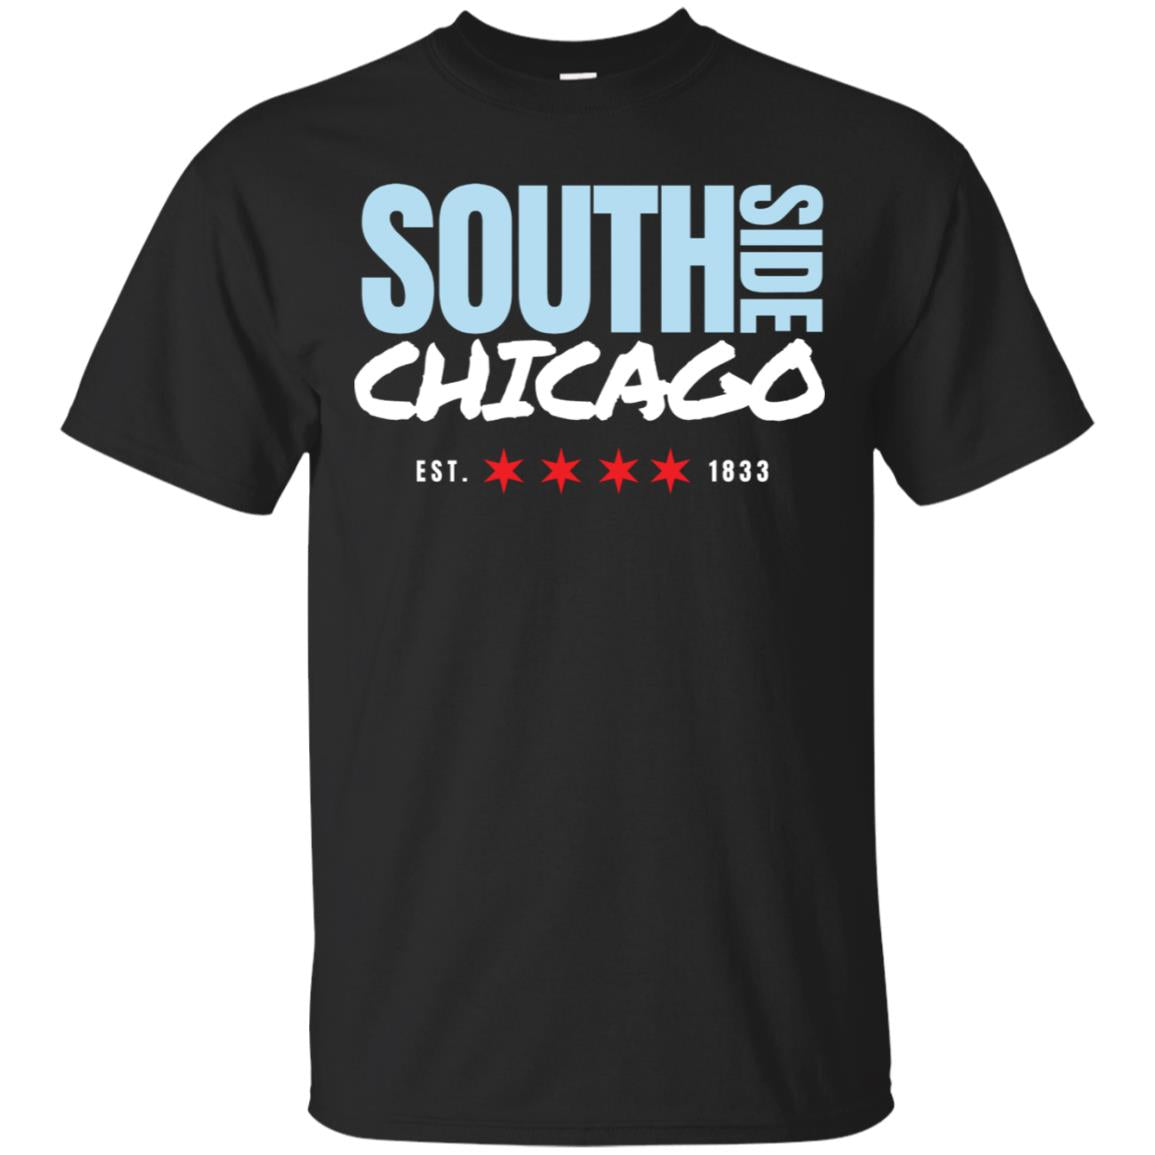 Southside Chicago T-Shirt for Men witty gift 99promocode